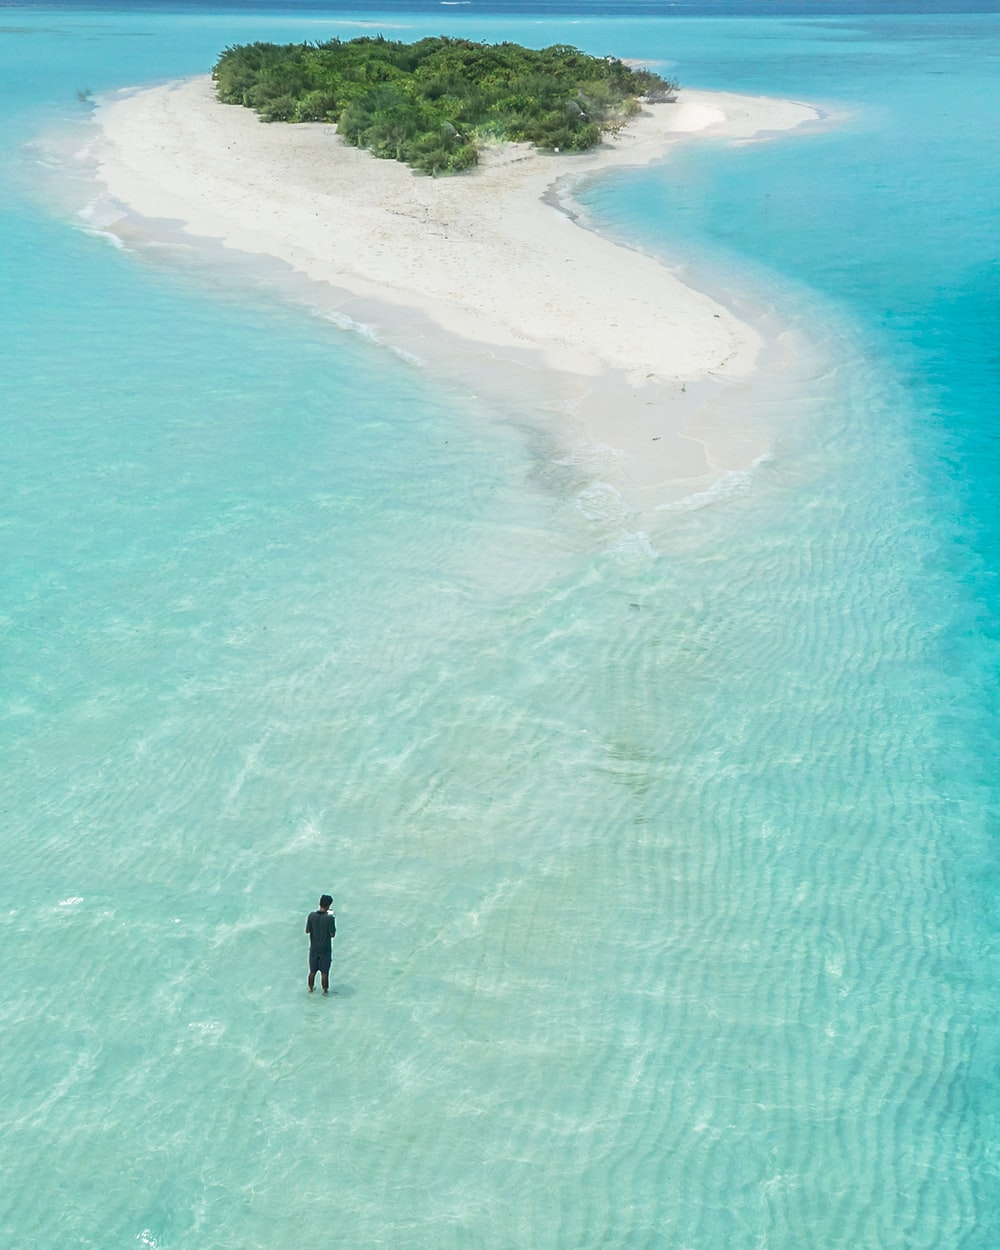 bird's eye view photography of man standing on body of water